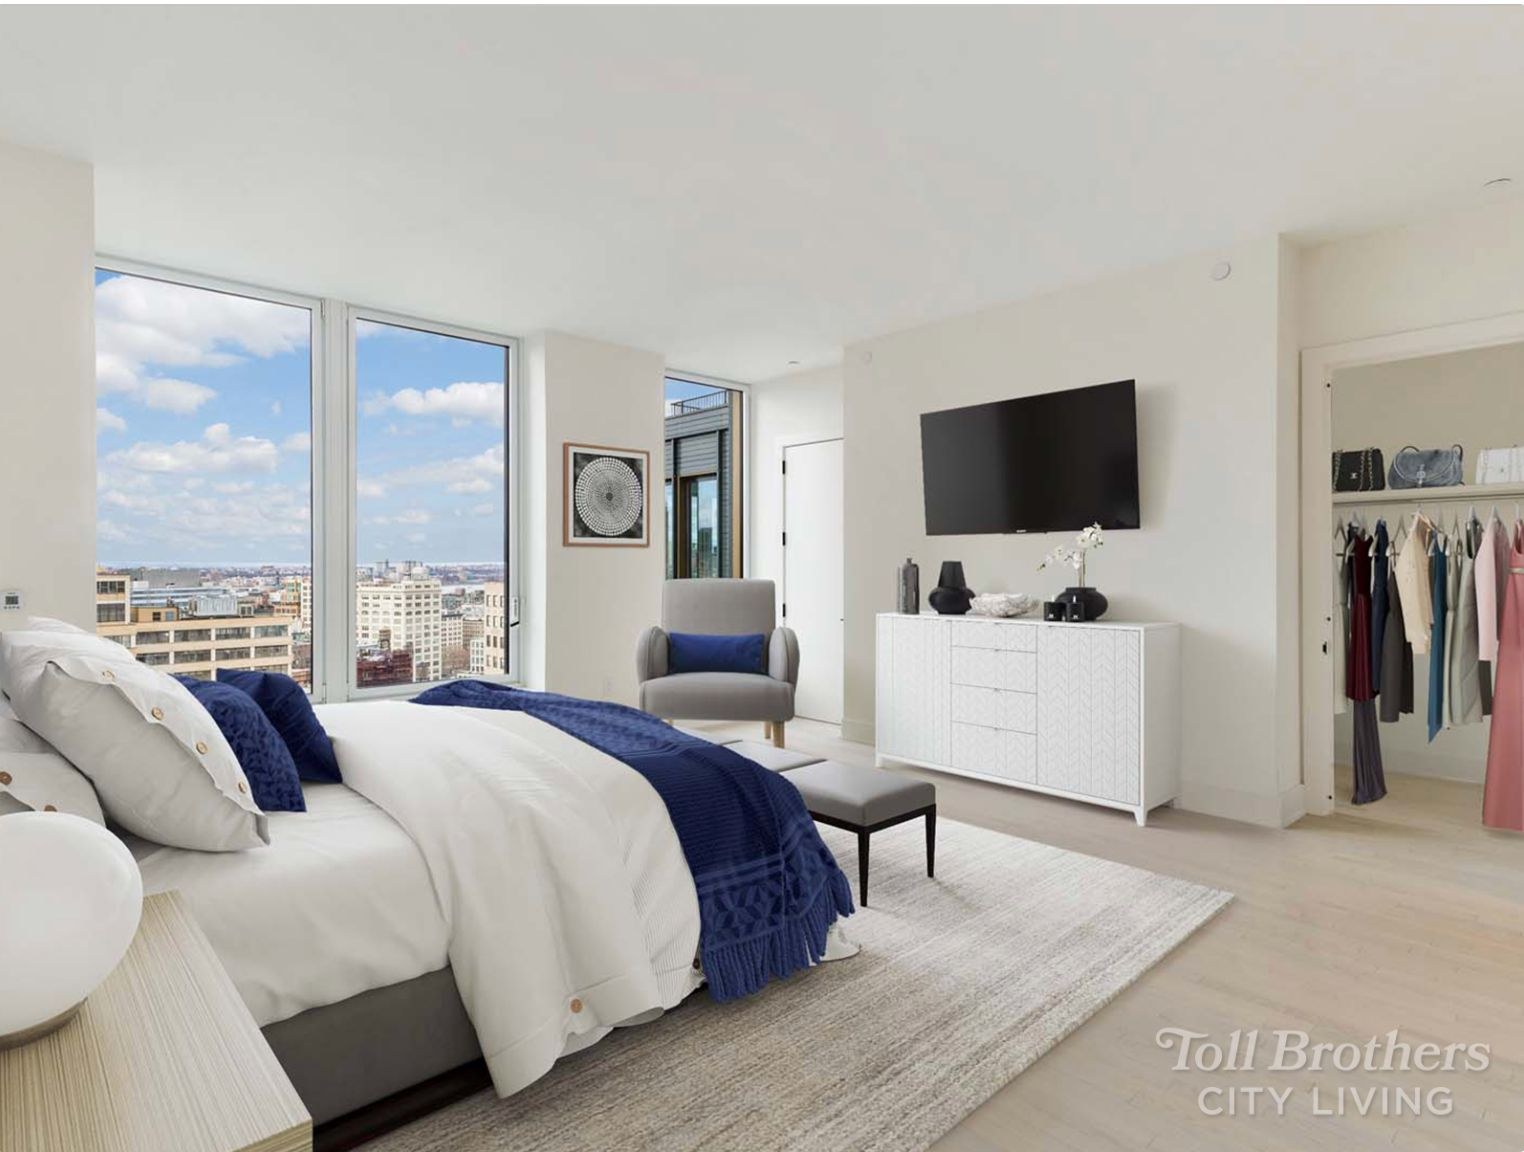 Bedroom featured in the PH1 By Toll Brothers in New York, NY